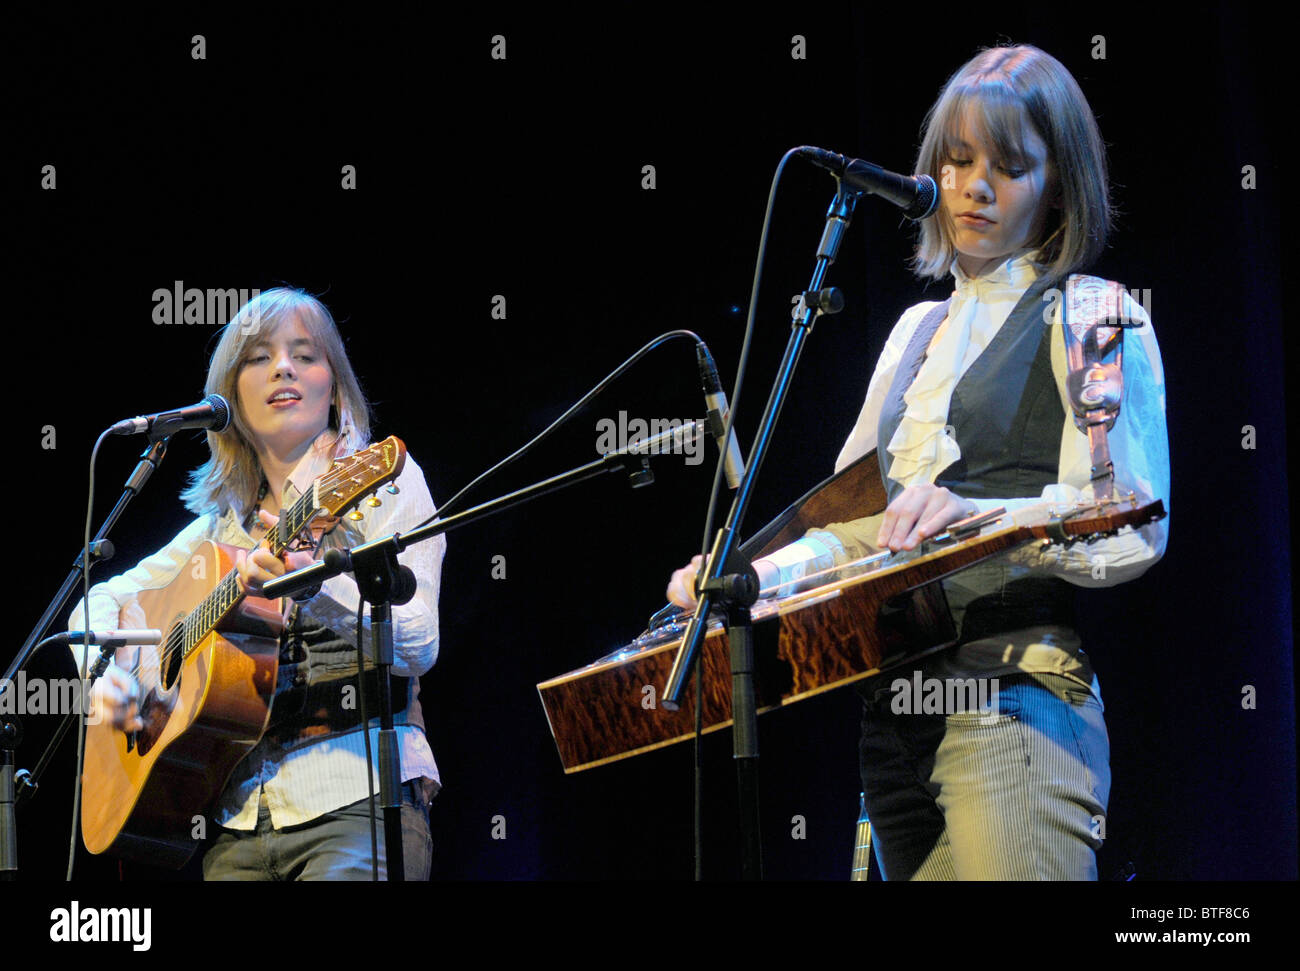 The Carrivick Sisters, 2010 BBC 2 Young Folk Award Finalists, play at the IGF festival at Kings Place, London Stock Photo